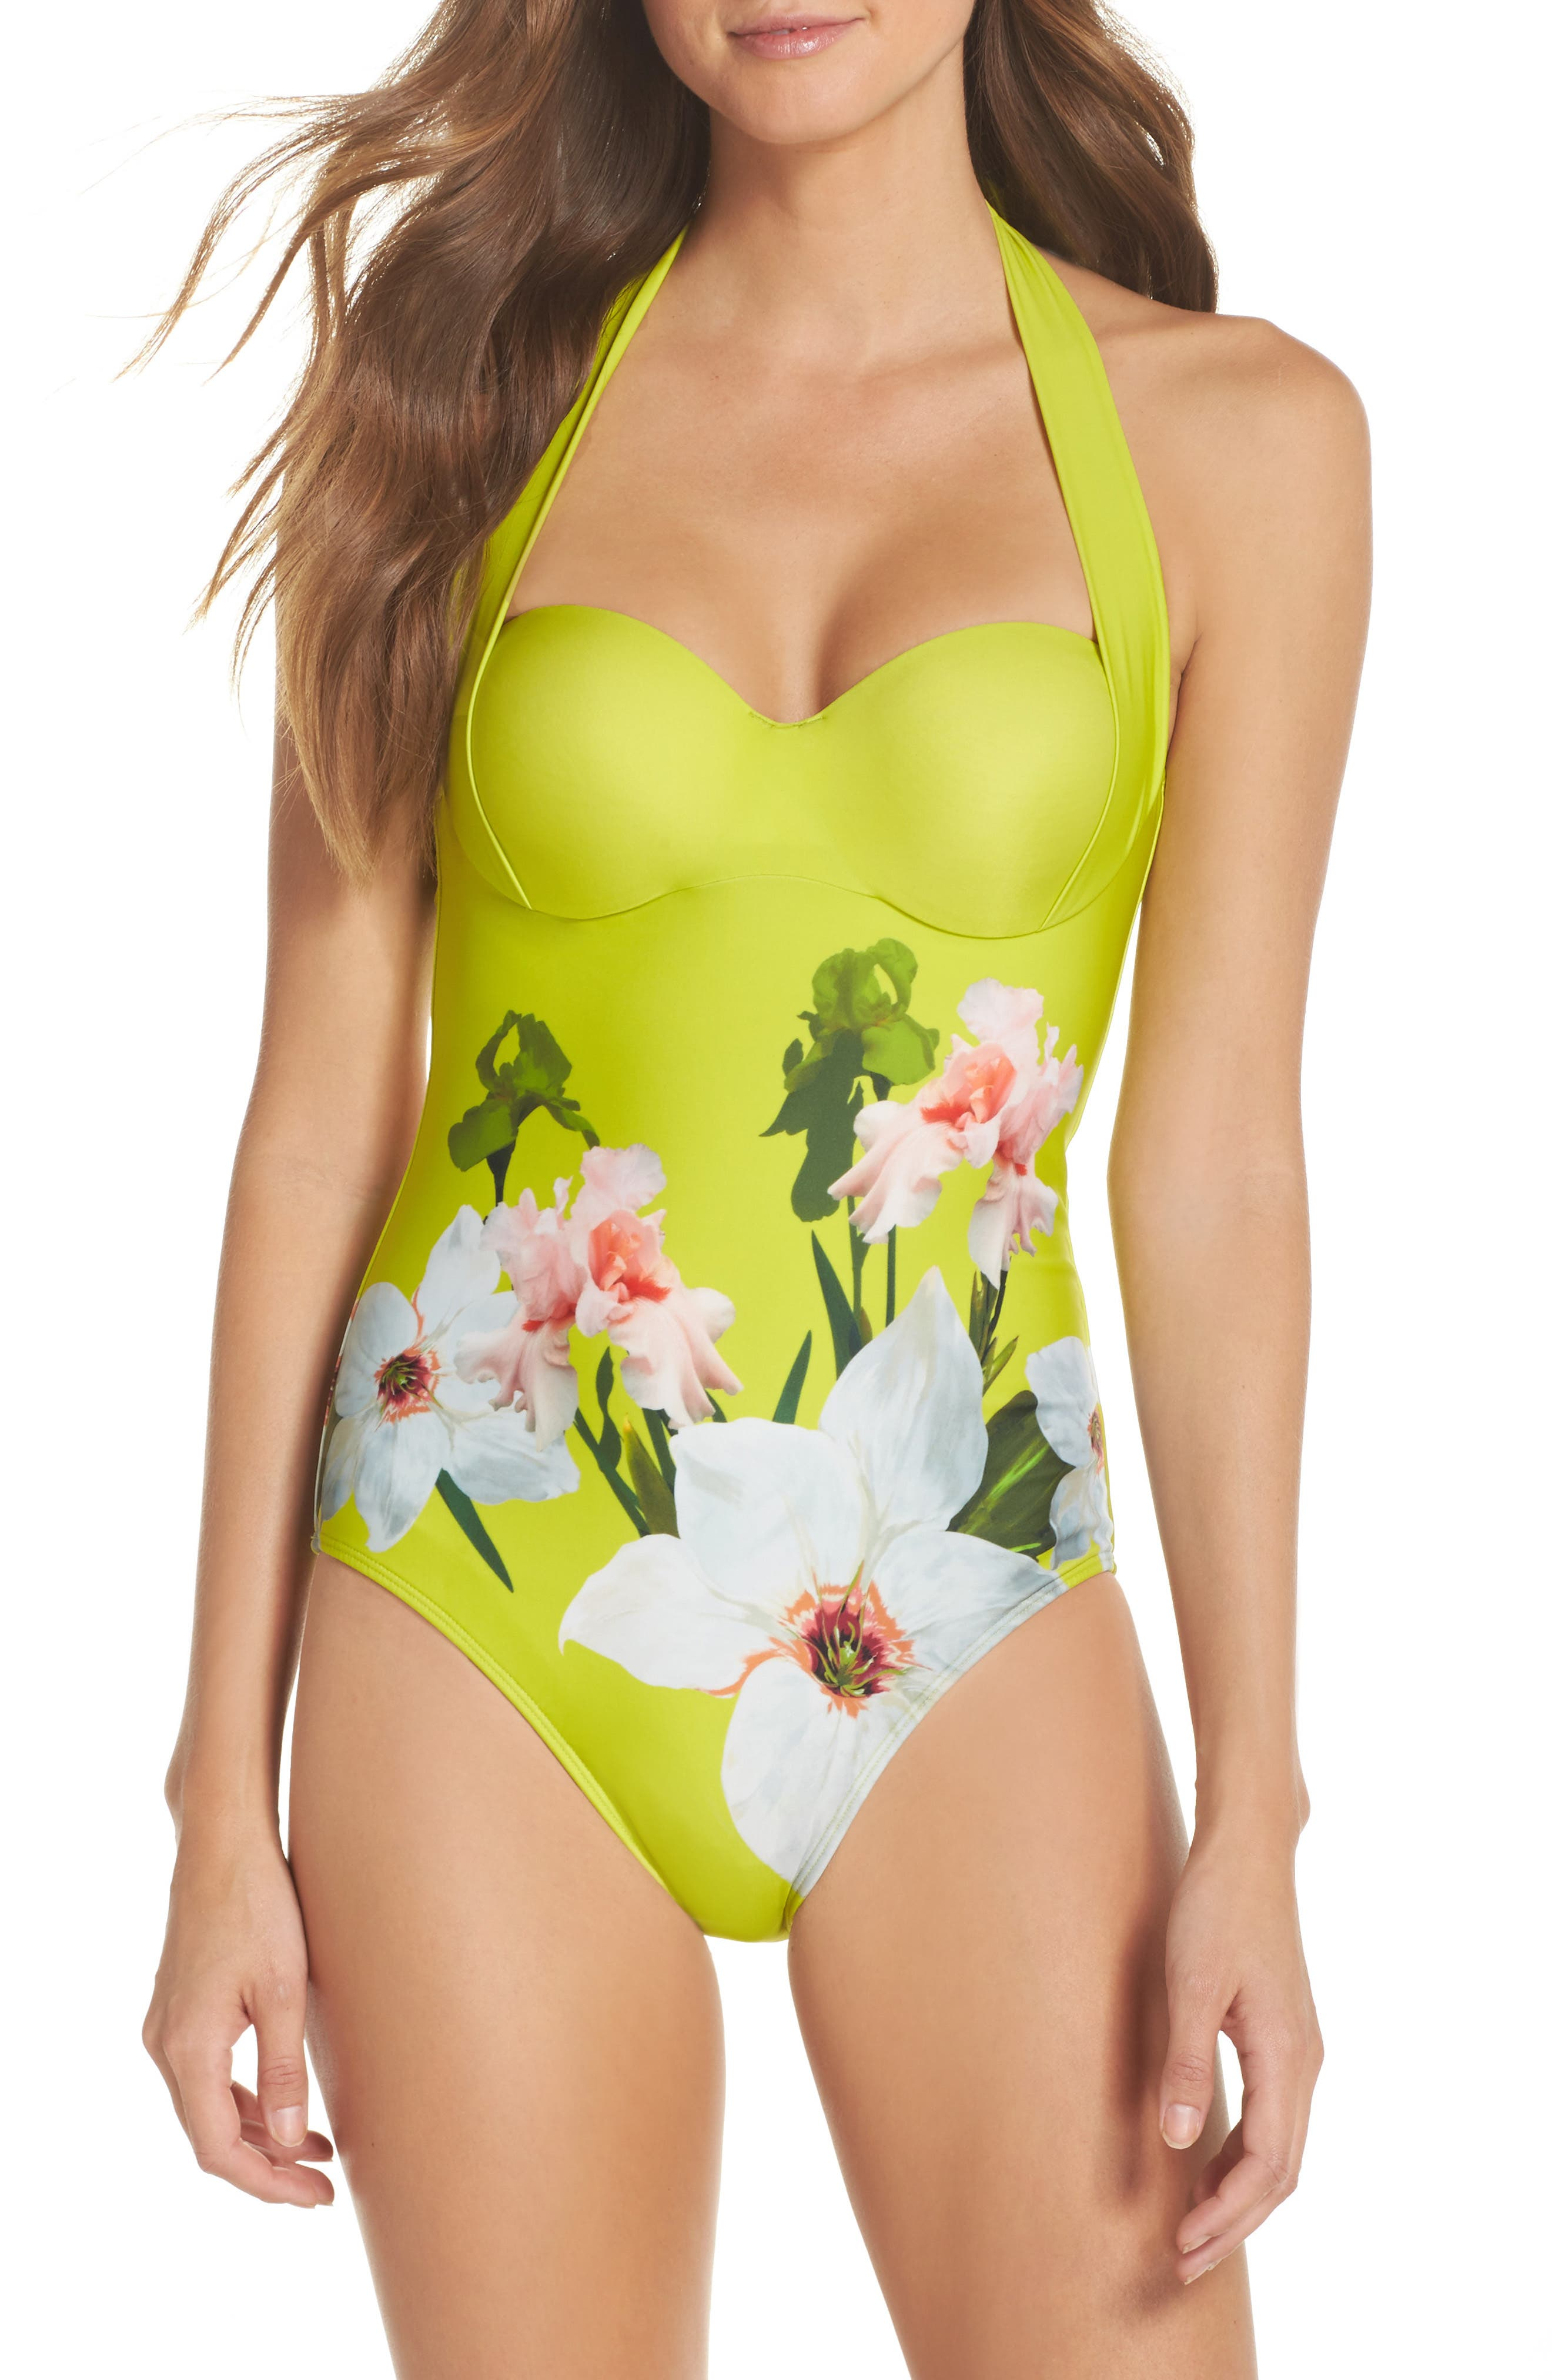 Chatsworth Bloom One-Piece Swimsuit,                         Main,                         color, Light Green